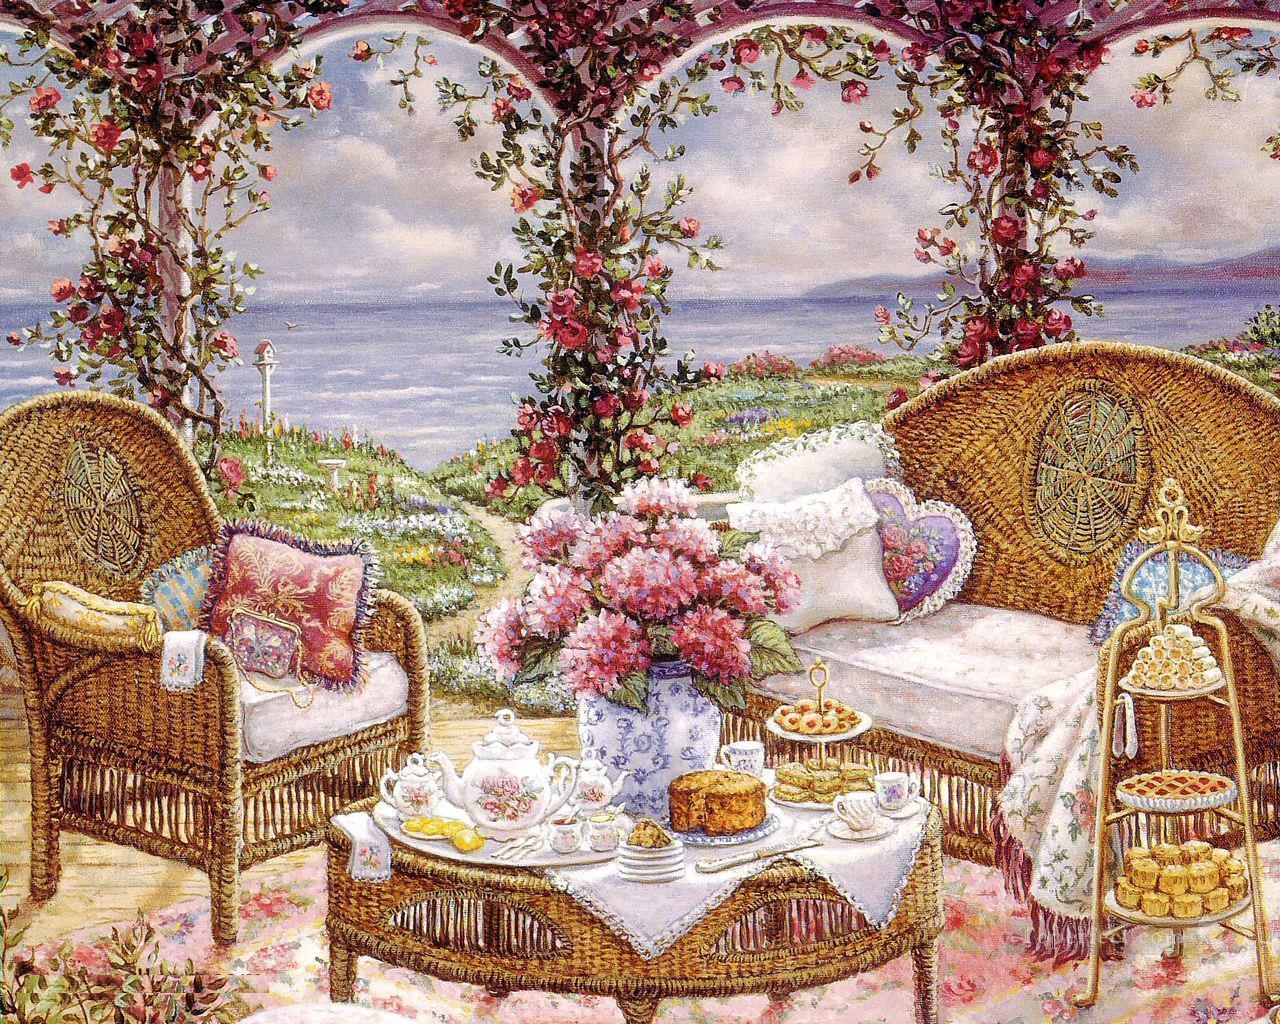 afternoontea garden Painting in Oil for Sale